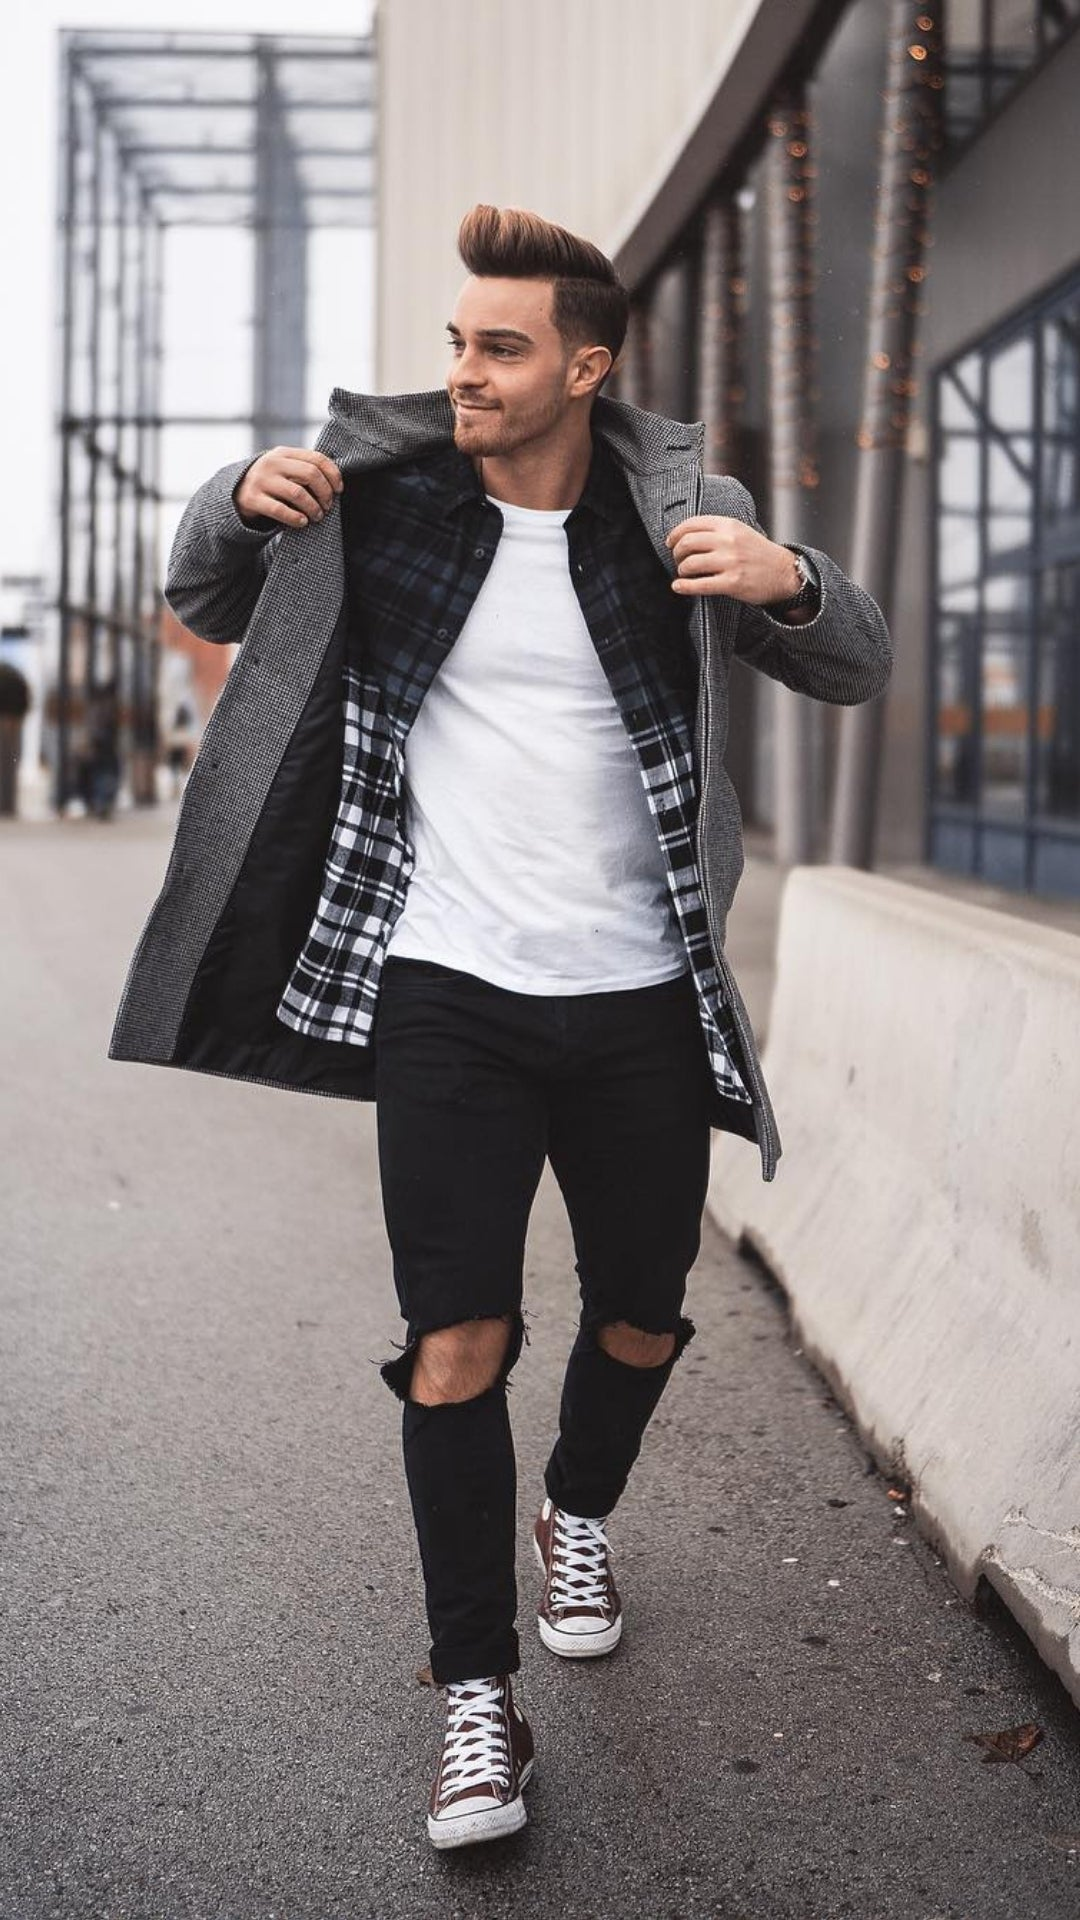 5 Edgy Street Styles Looks To Try In 2019 – LIFESTYLE BY PS